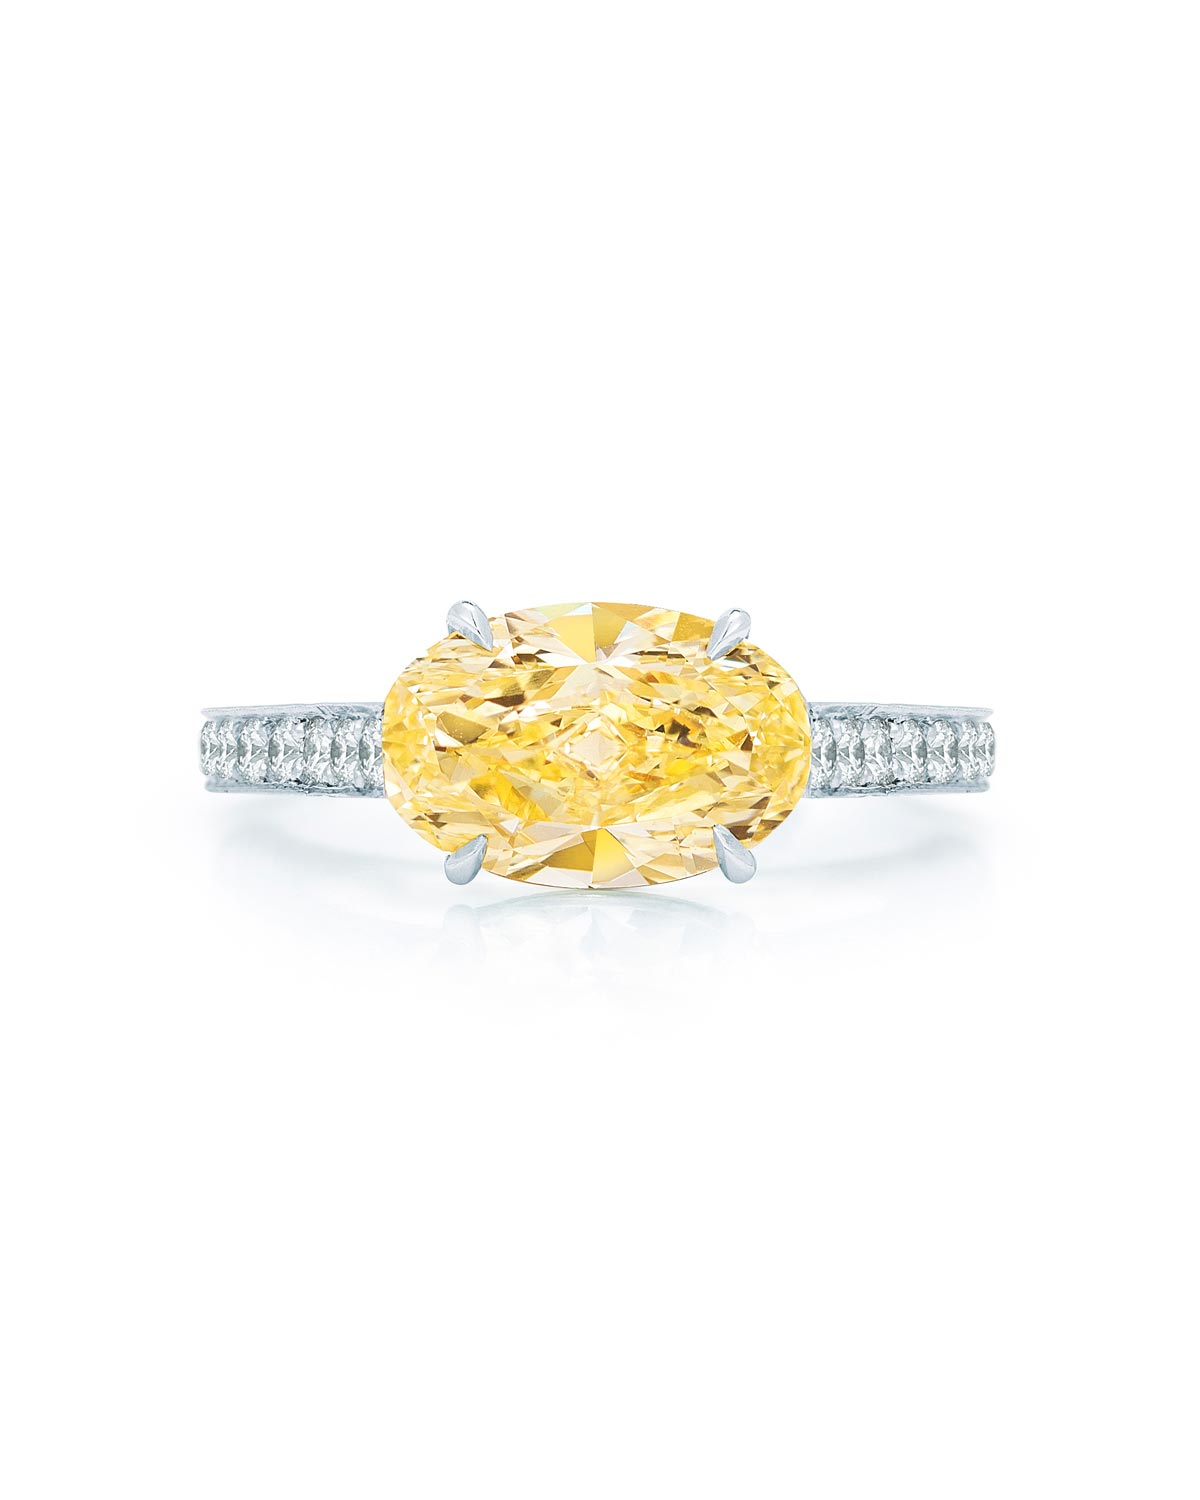 east-west-engagement-ring-kwiat-0116.jpg